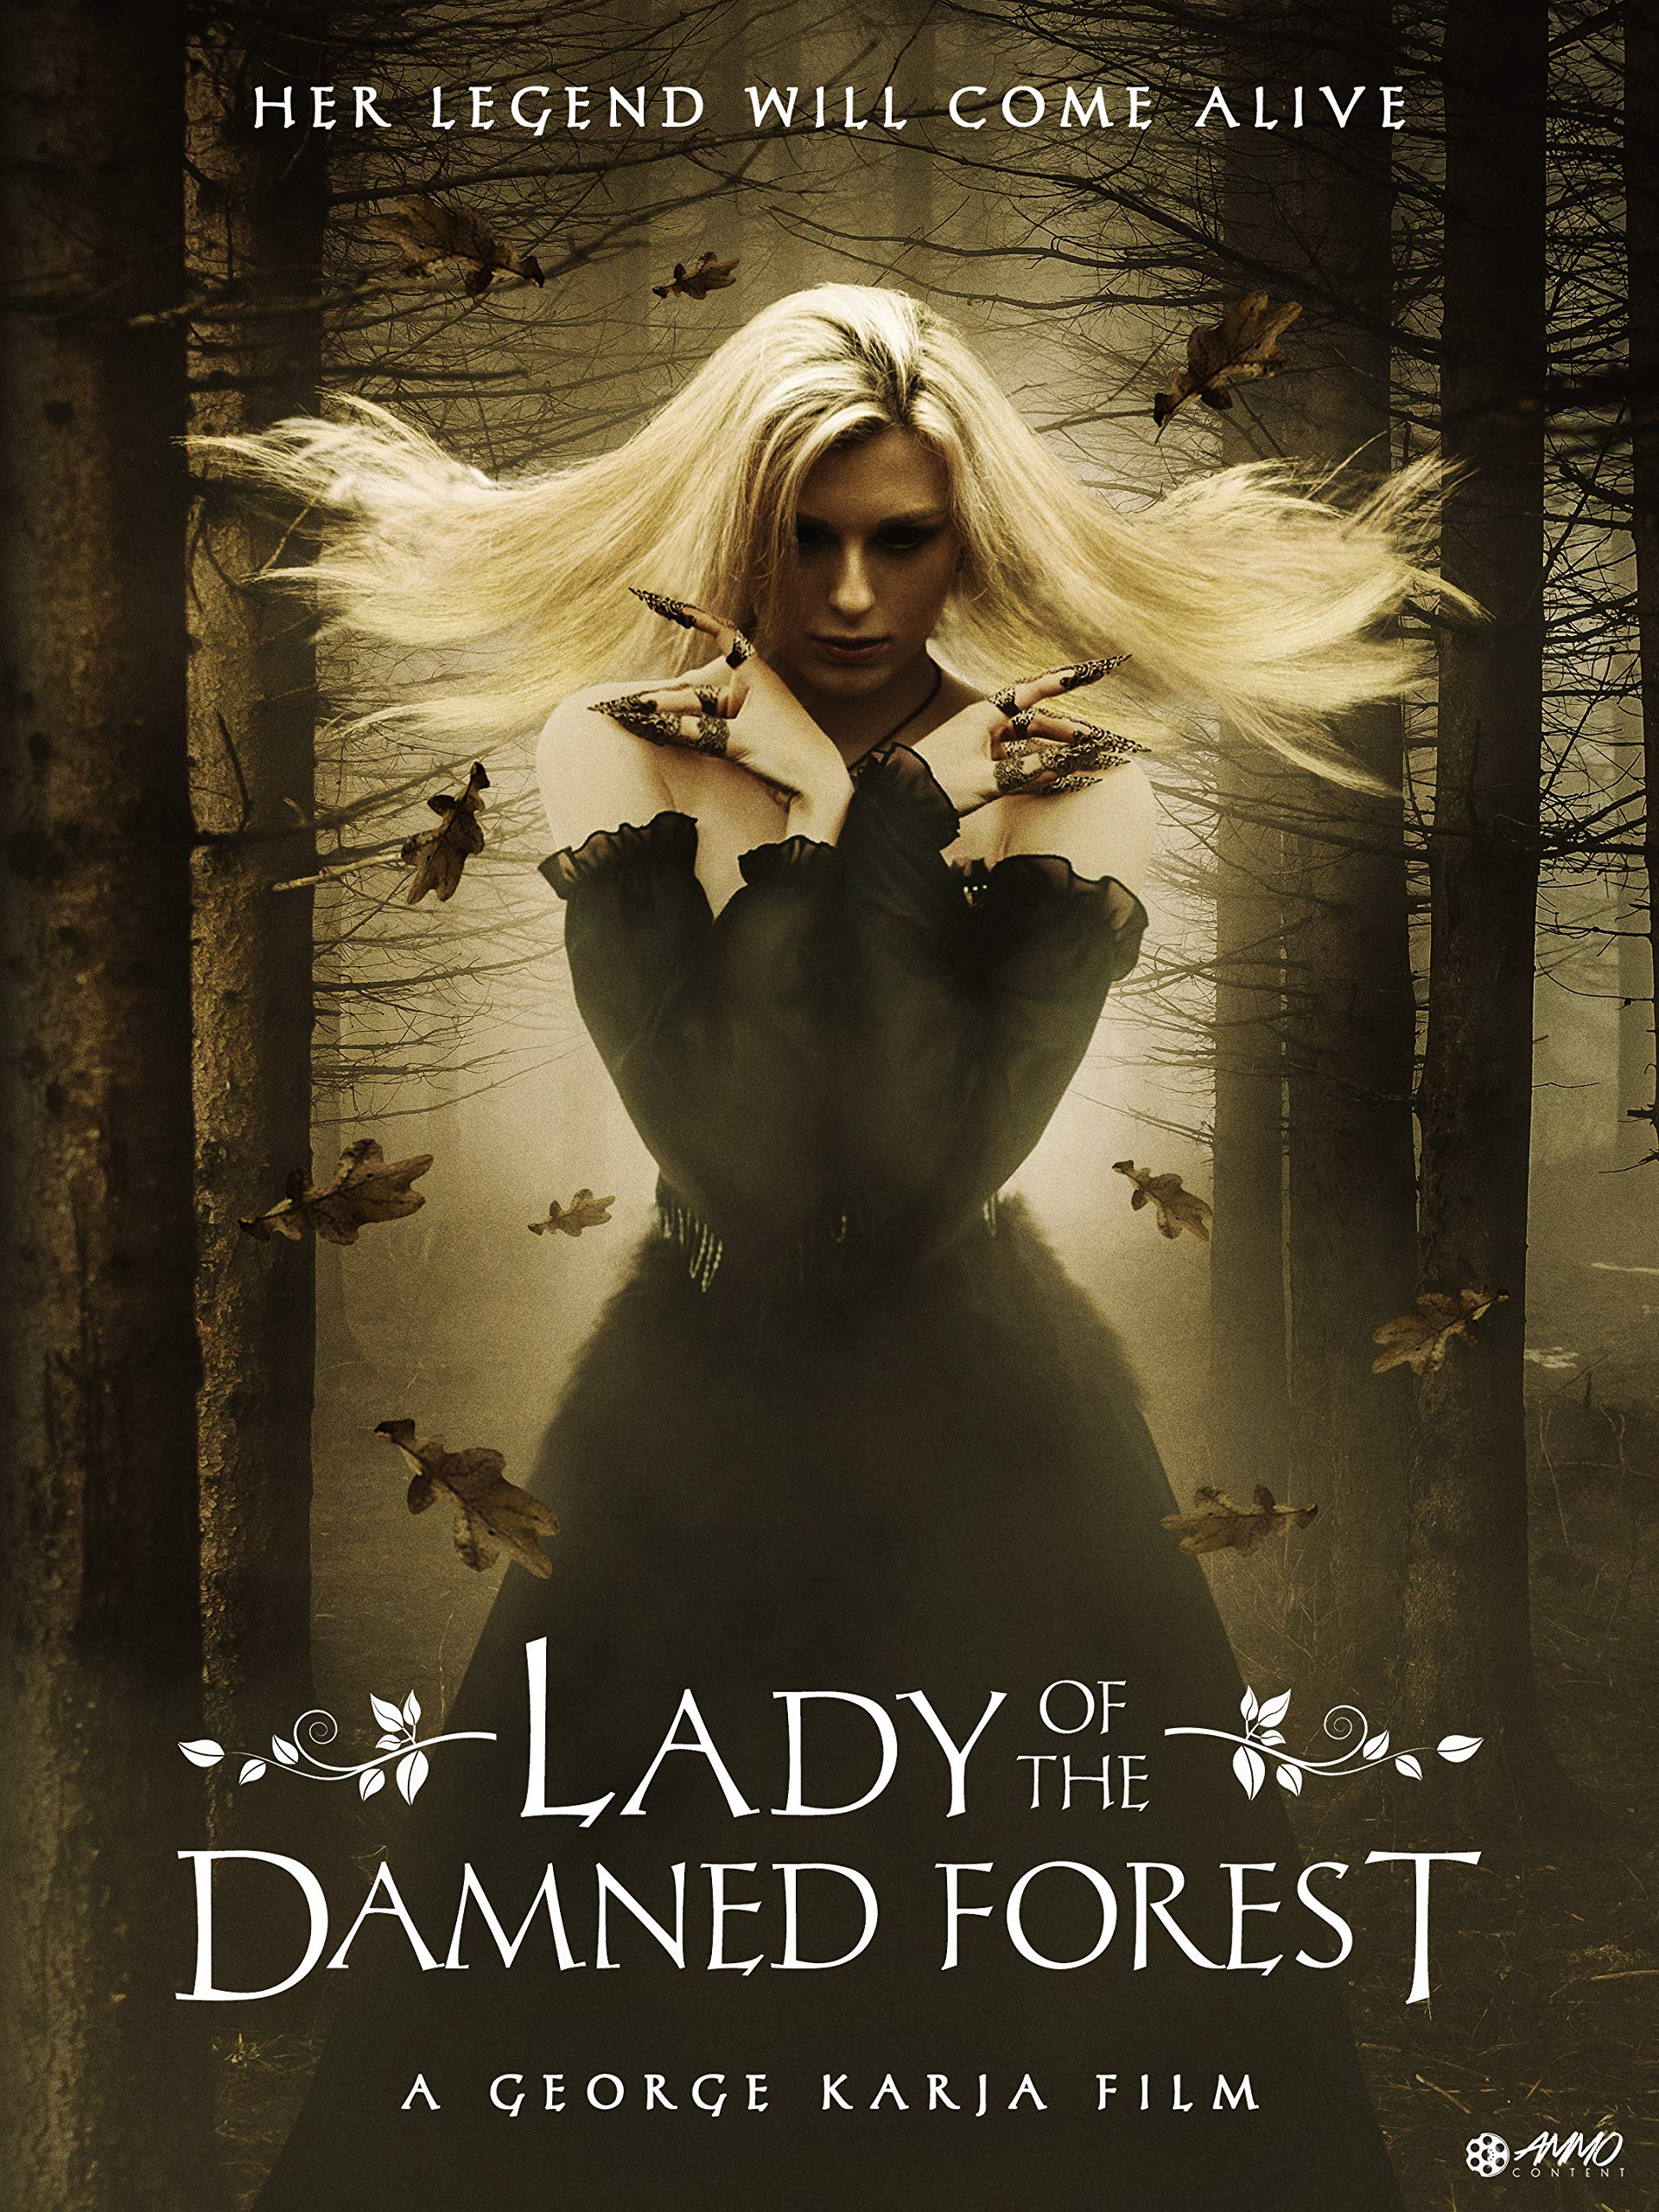 Lady of The Damned Forest 2017 Hindi Dual Audio 720p HDRip ESubs 1.1GB x264 AAC